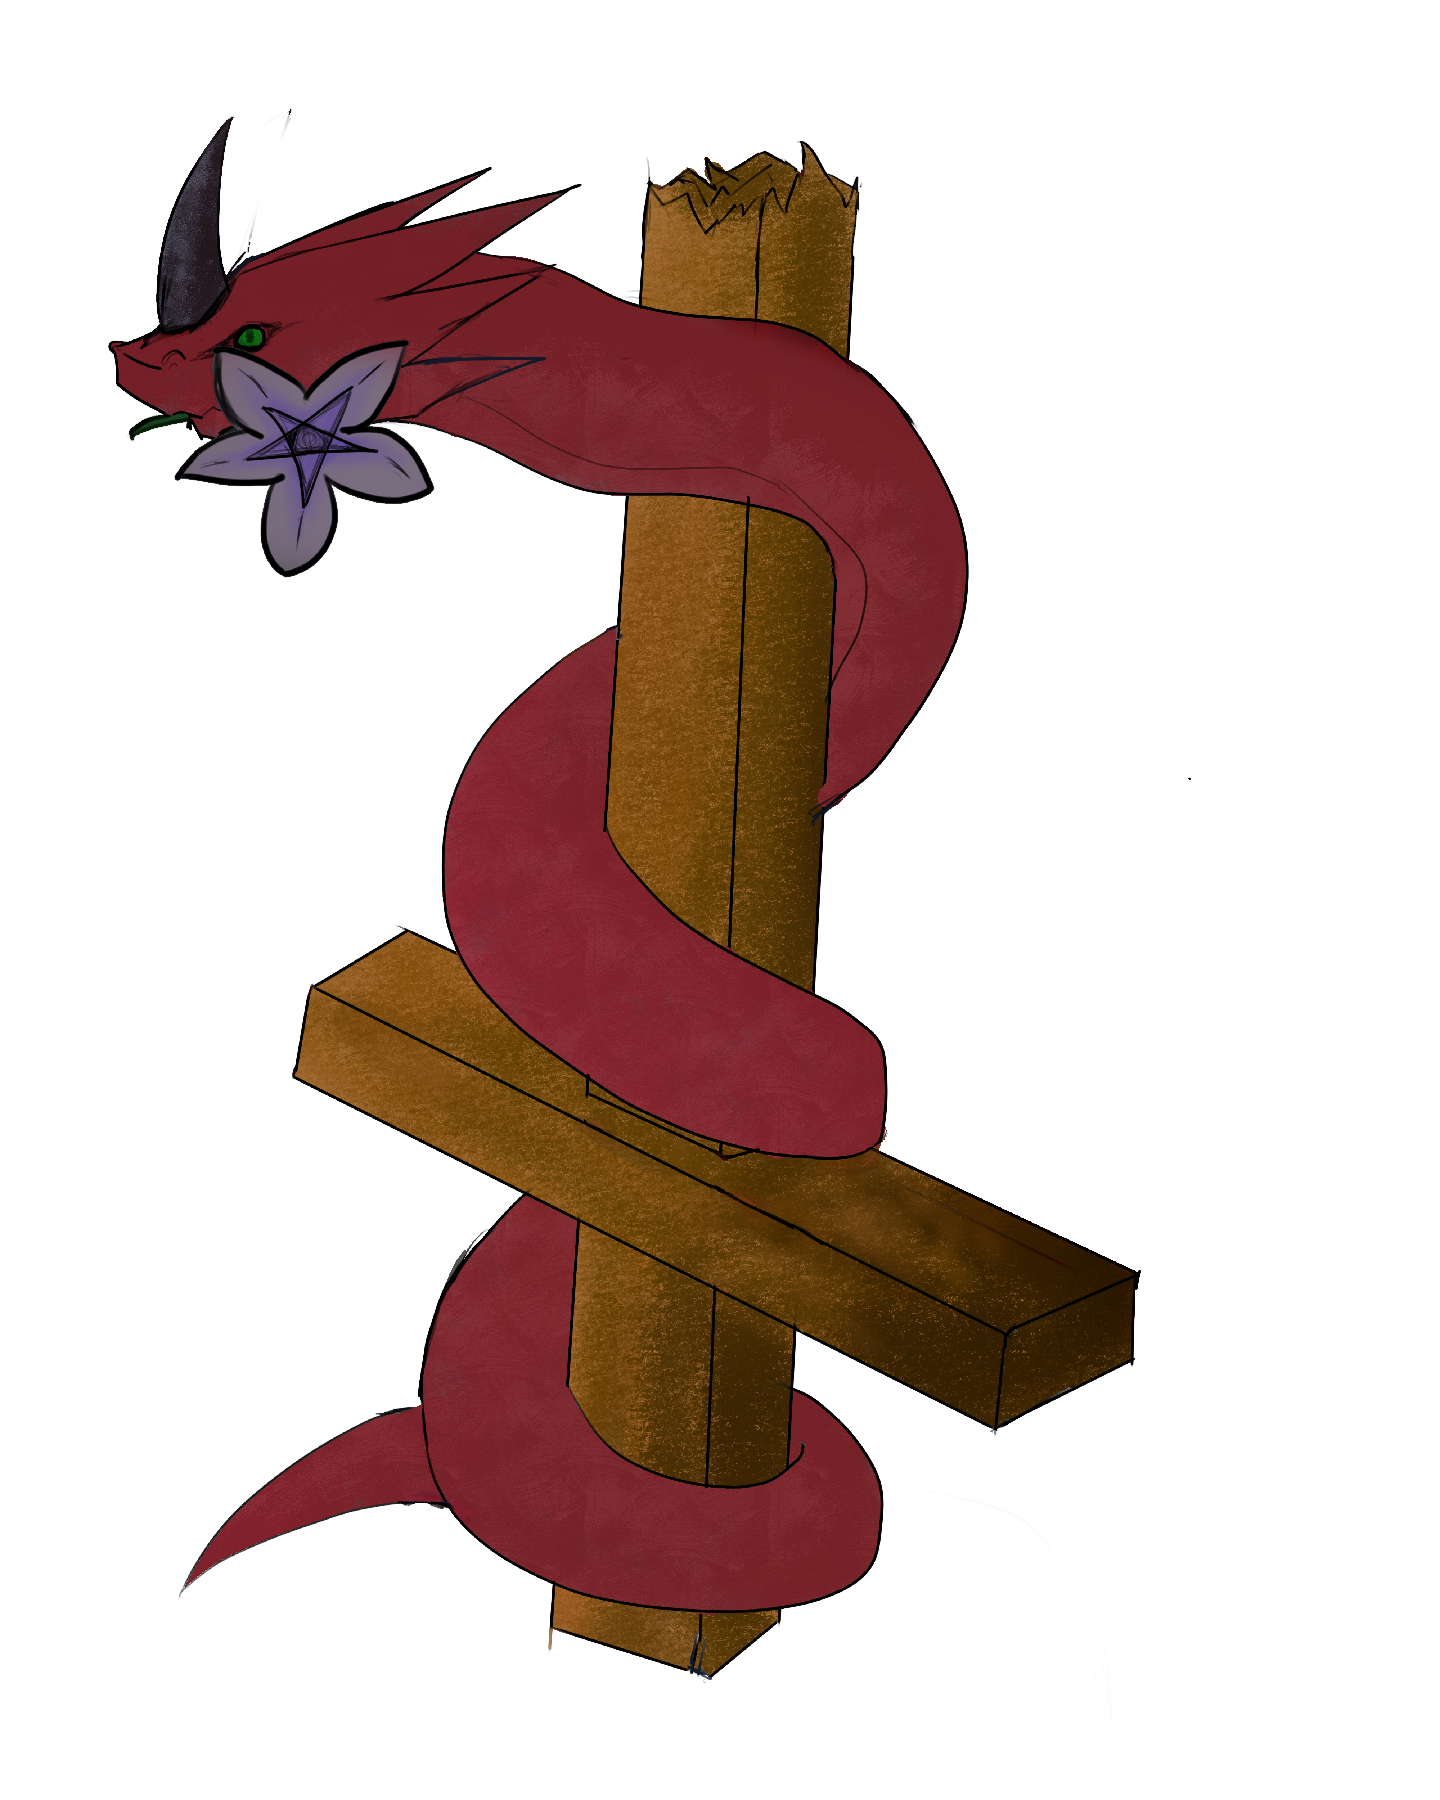 Draw-flower-serpent-Cut.png